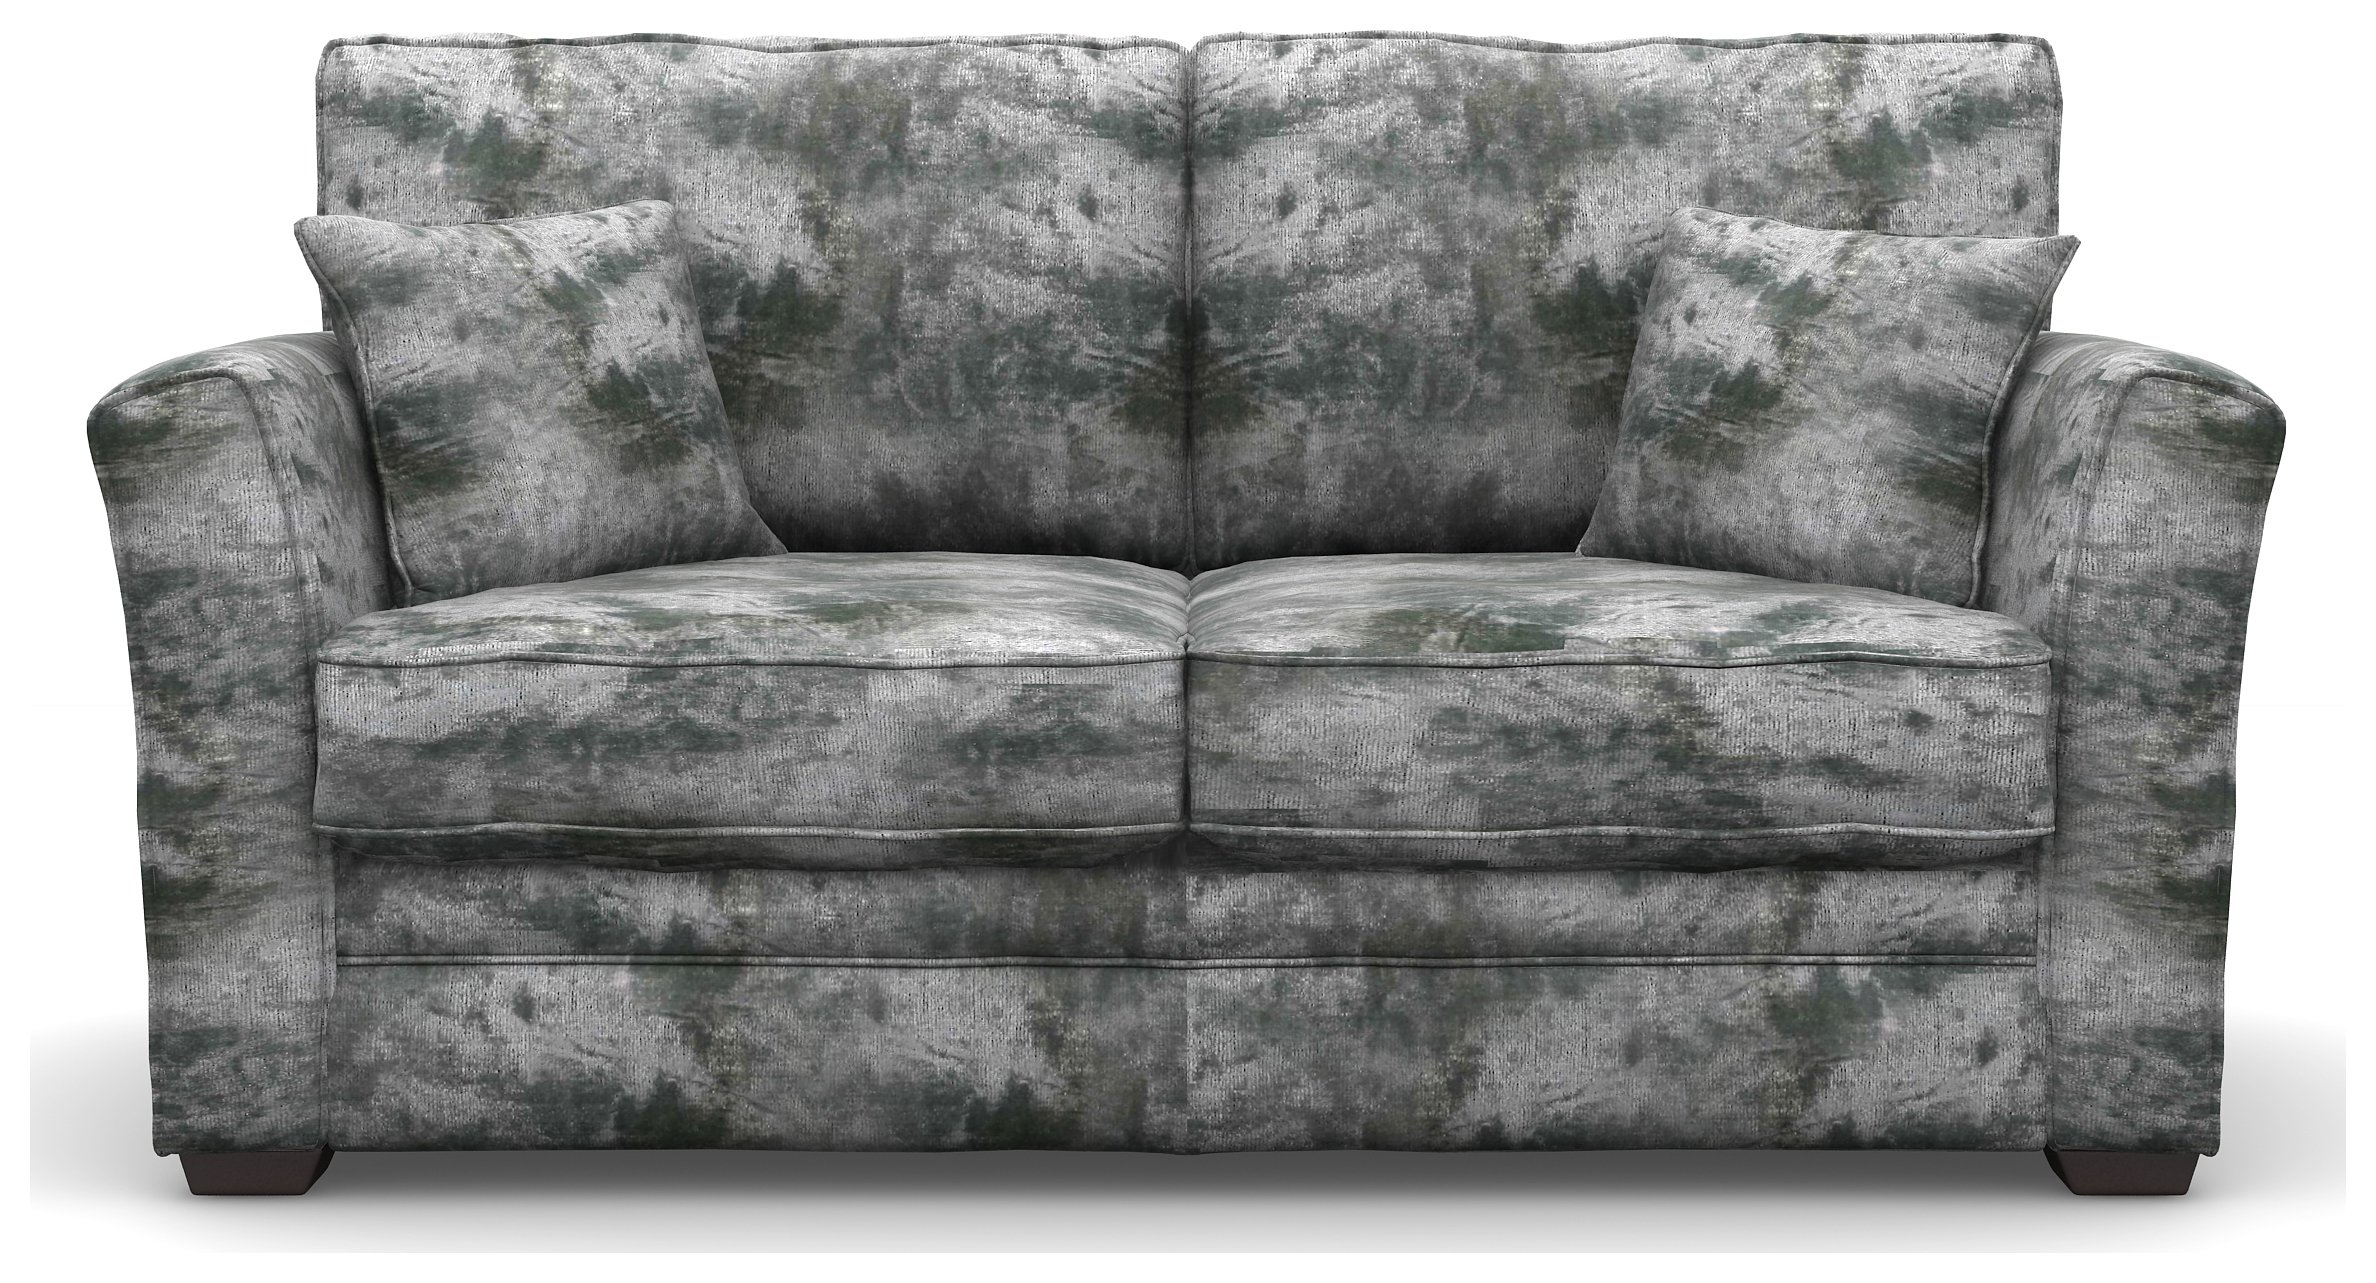 Heart of House Malton 2 Seater Fabric Sofa Bed - Silver + Black Legs